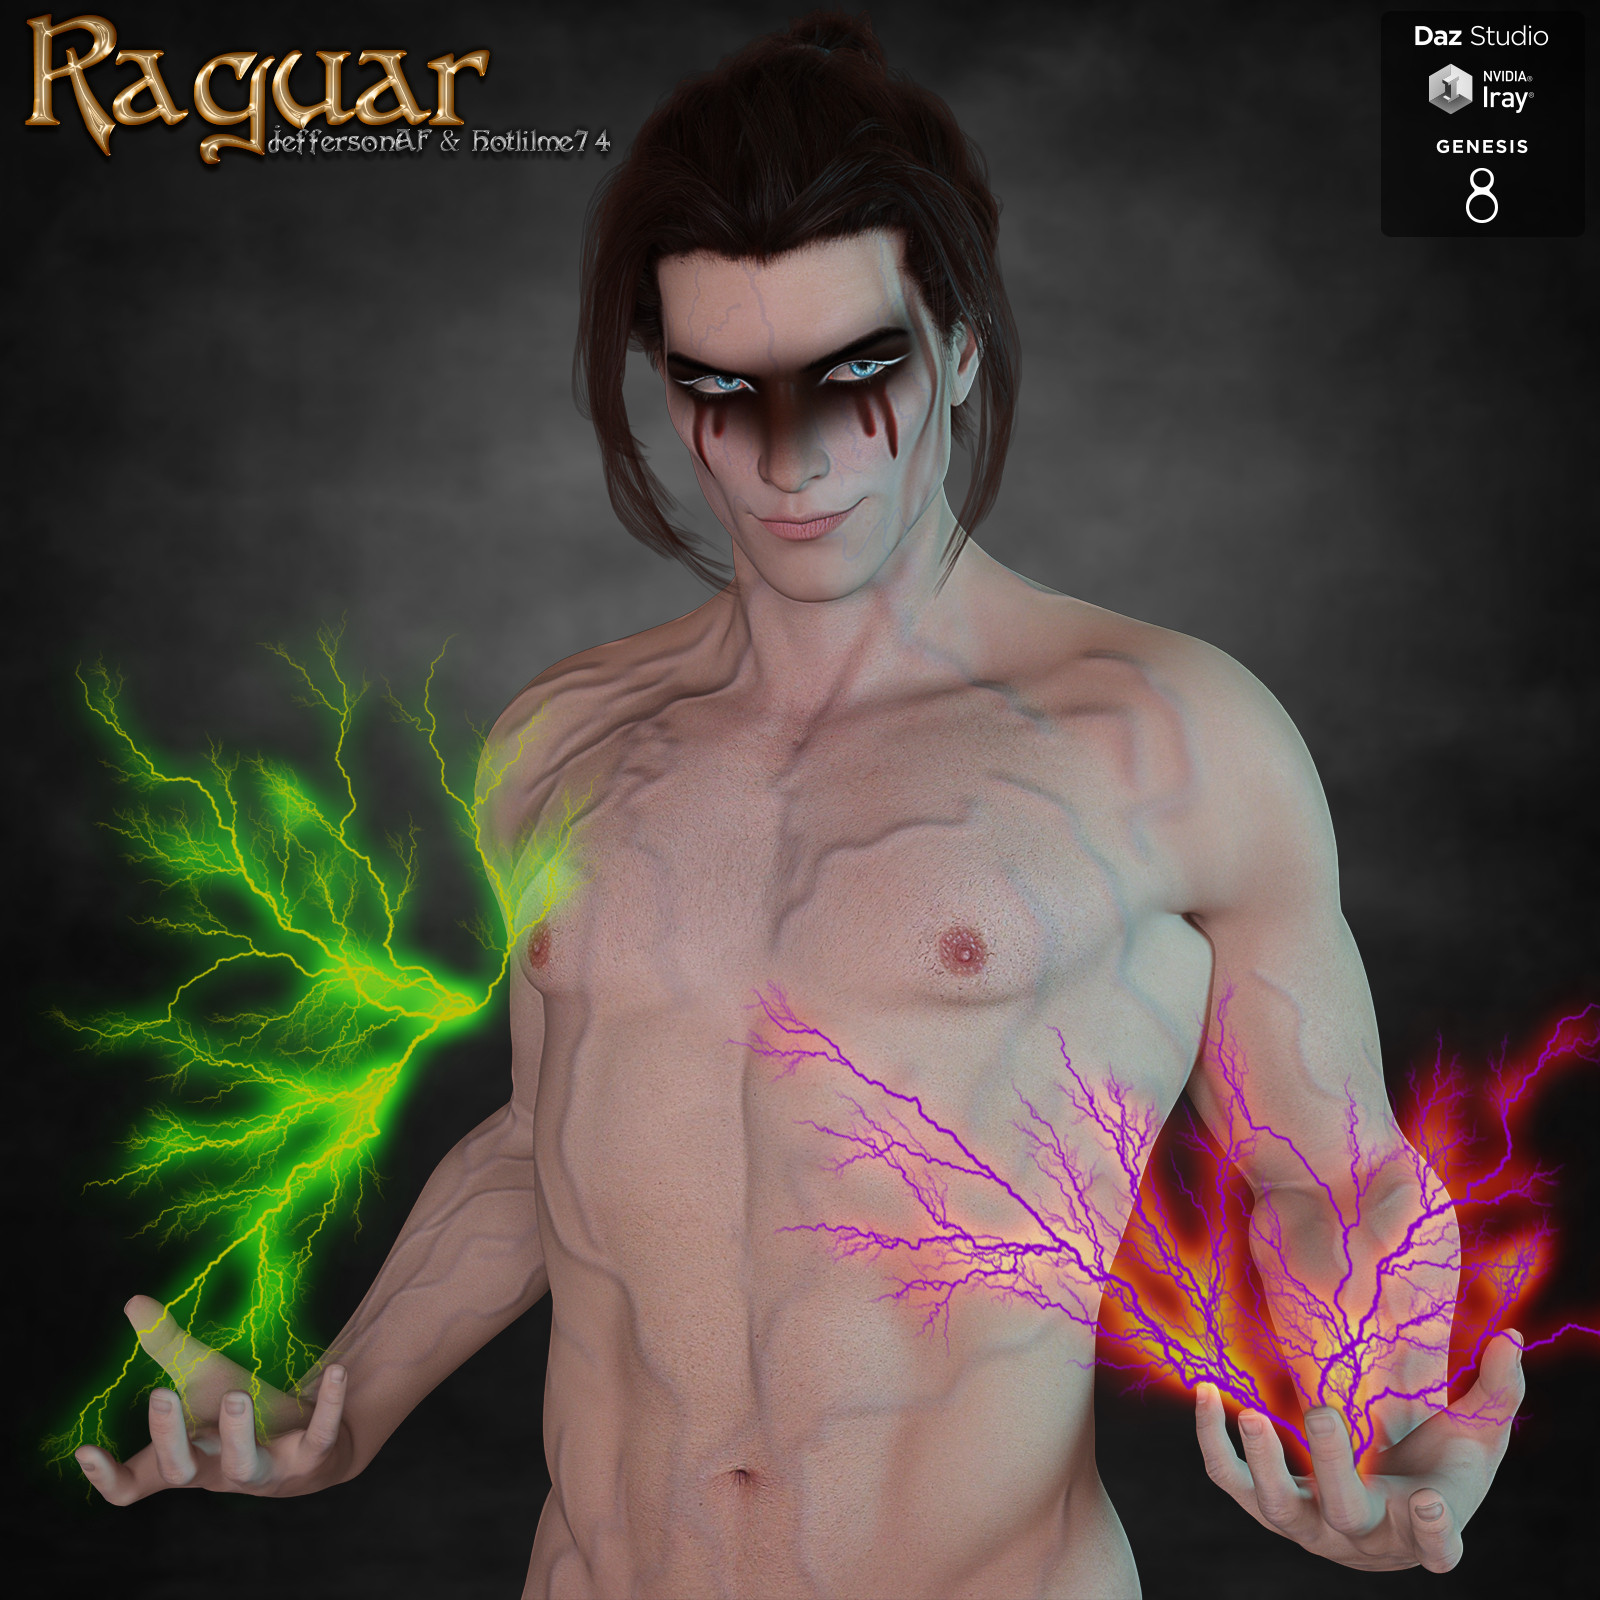 Raguar by JeffersonAF